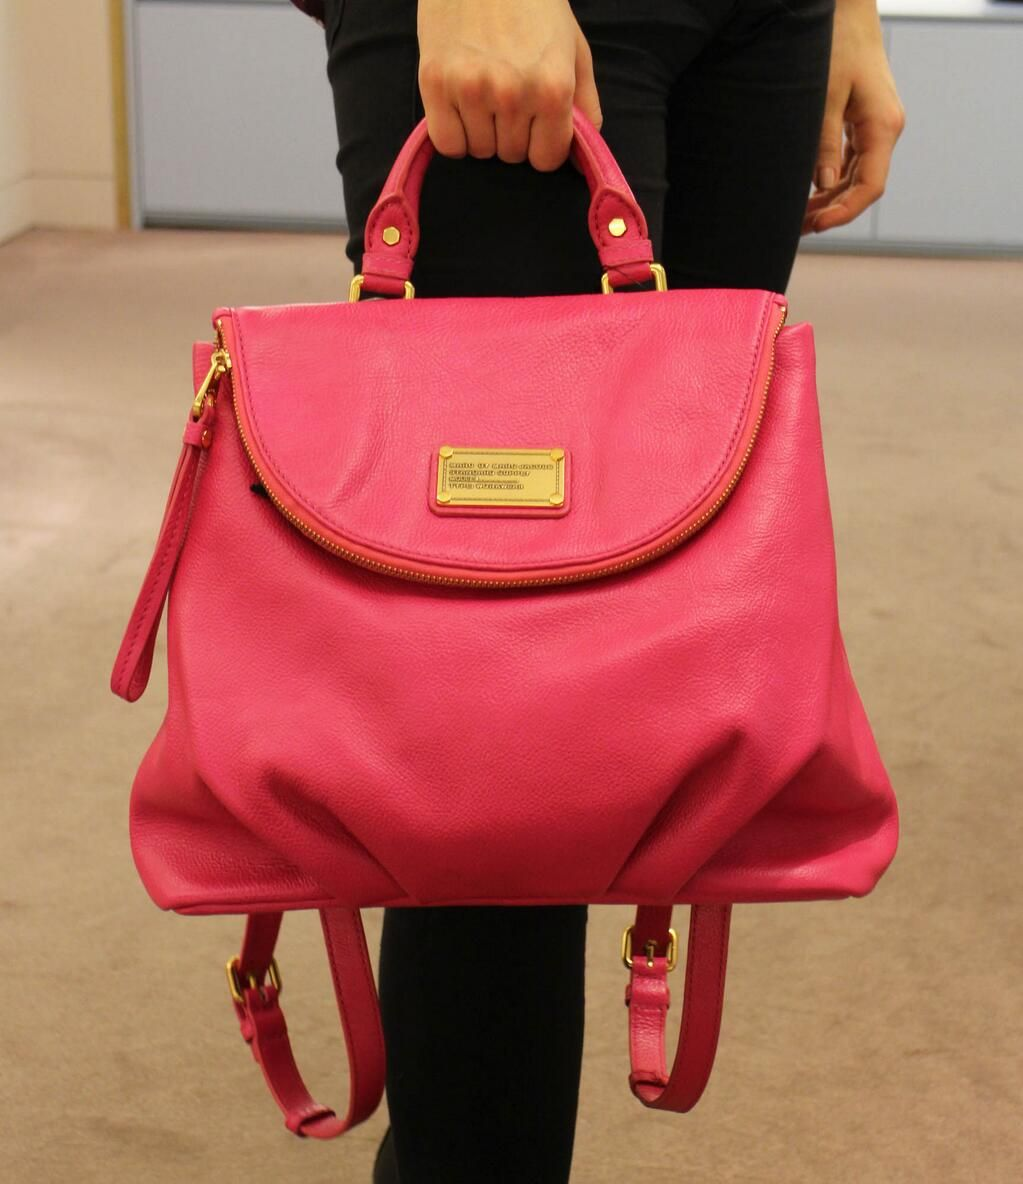 In a brazen and bold shade, this Marc Jacobs backpack has certainly brightened up our day…